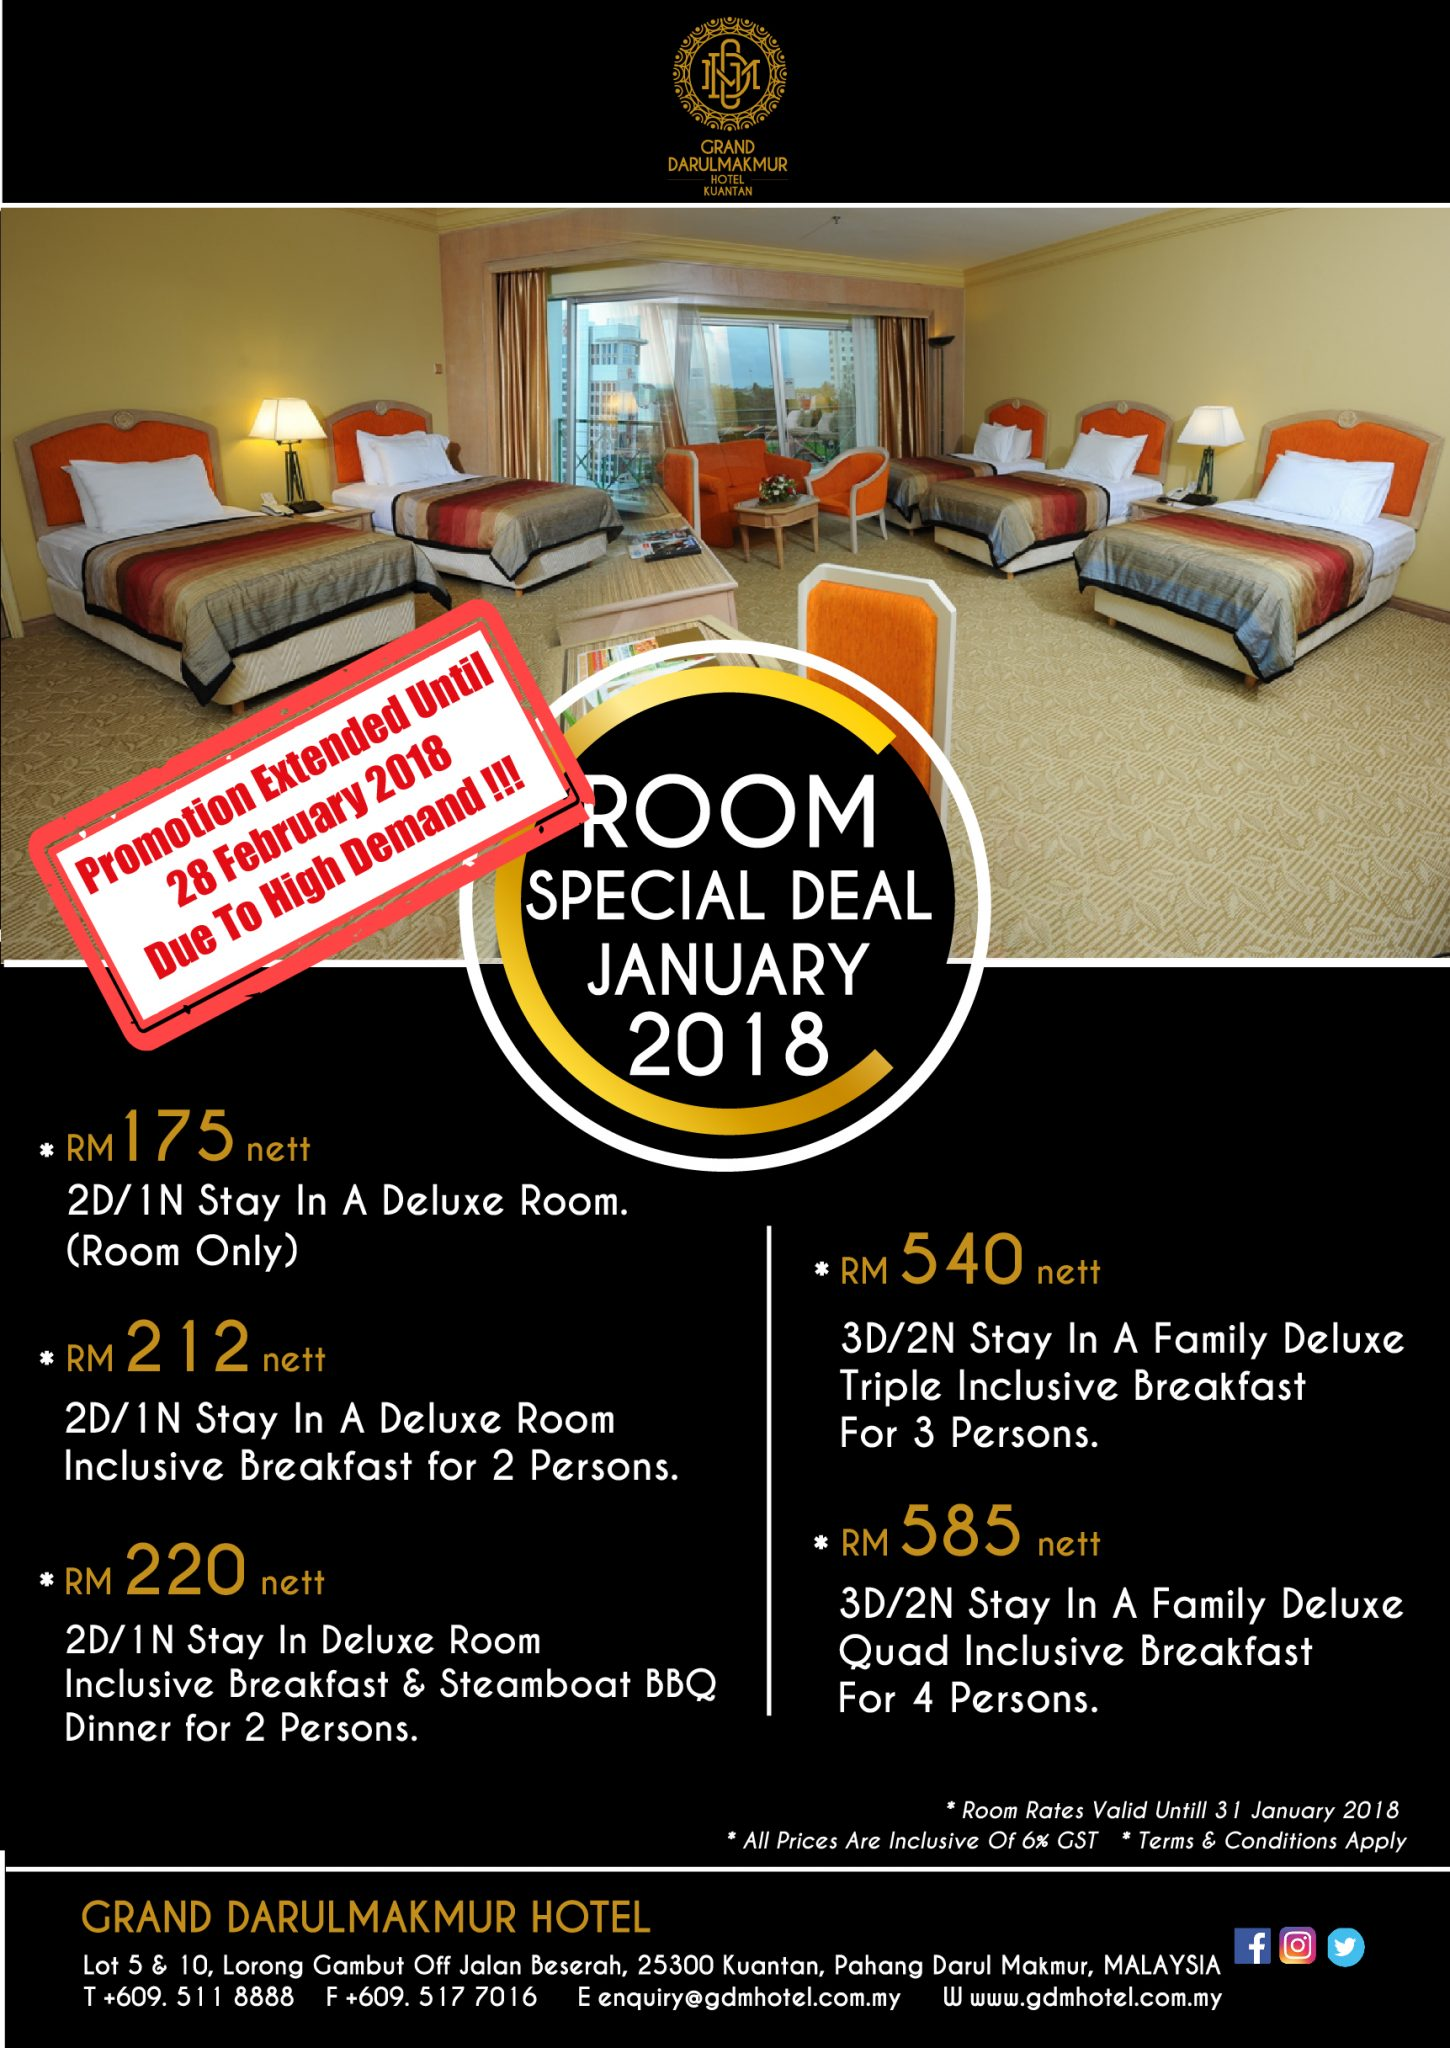 Room Special Deal Promotion Extended